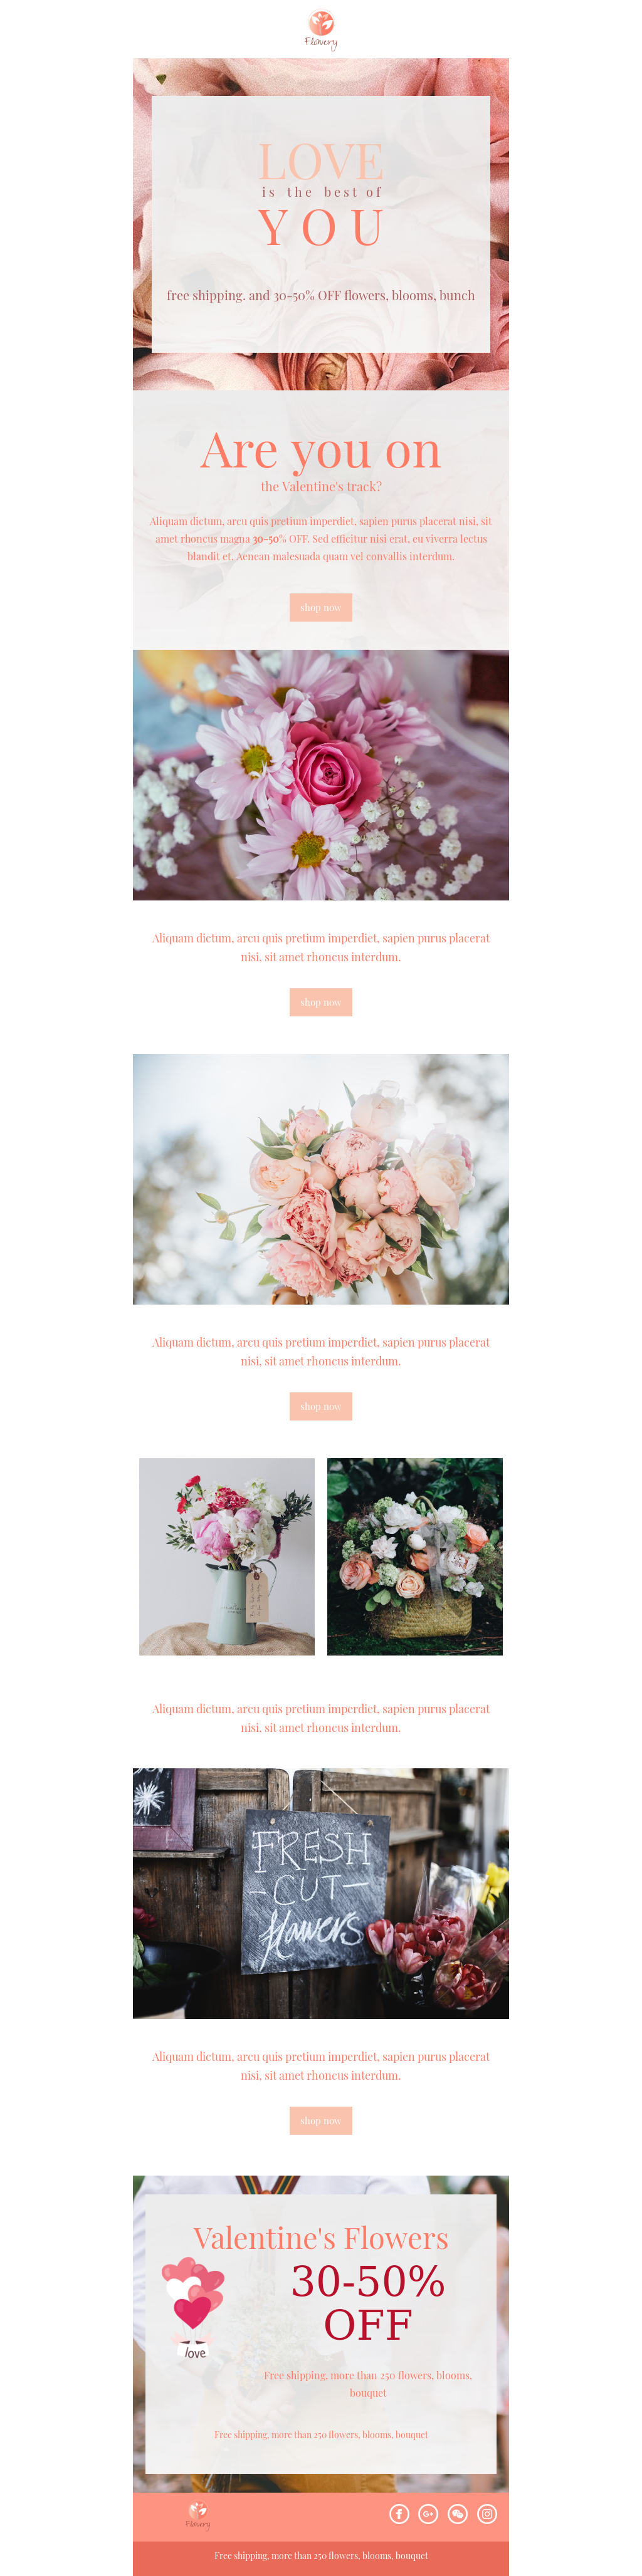 Valentine's Day Flowers Email Template